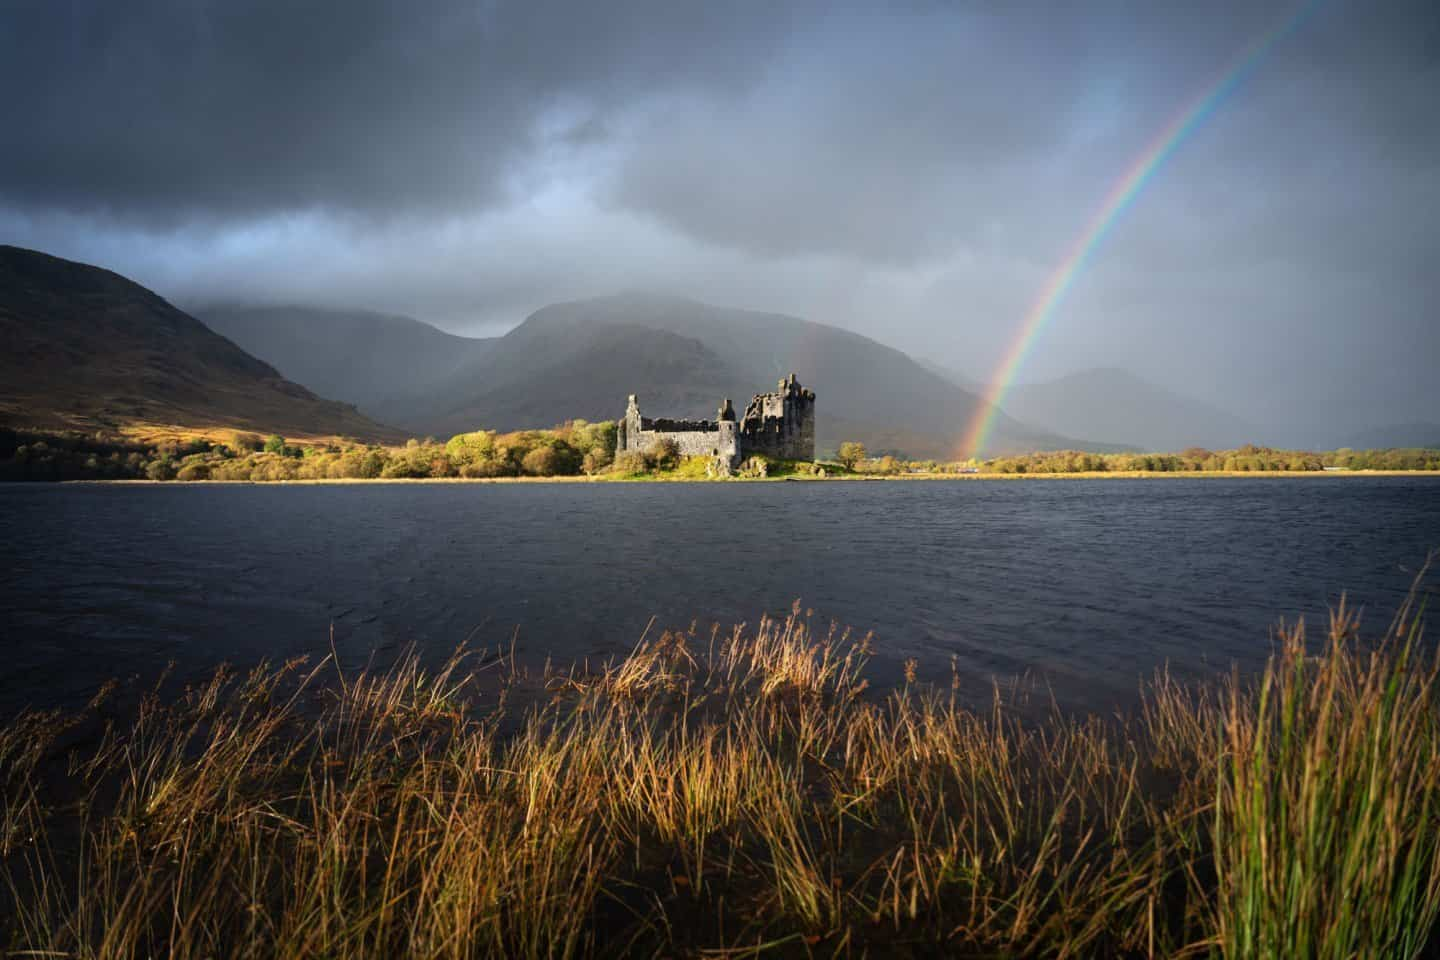 A breathtaking burst of light hits Kilchurn Castle while an autumn rainbow ignites in color.